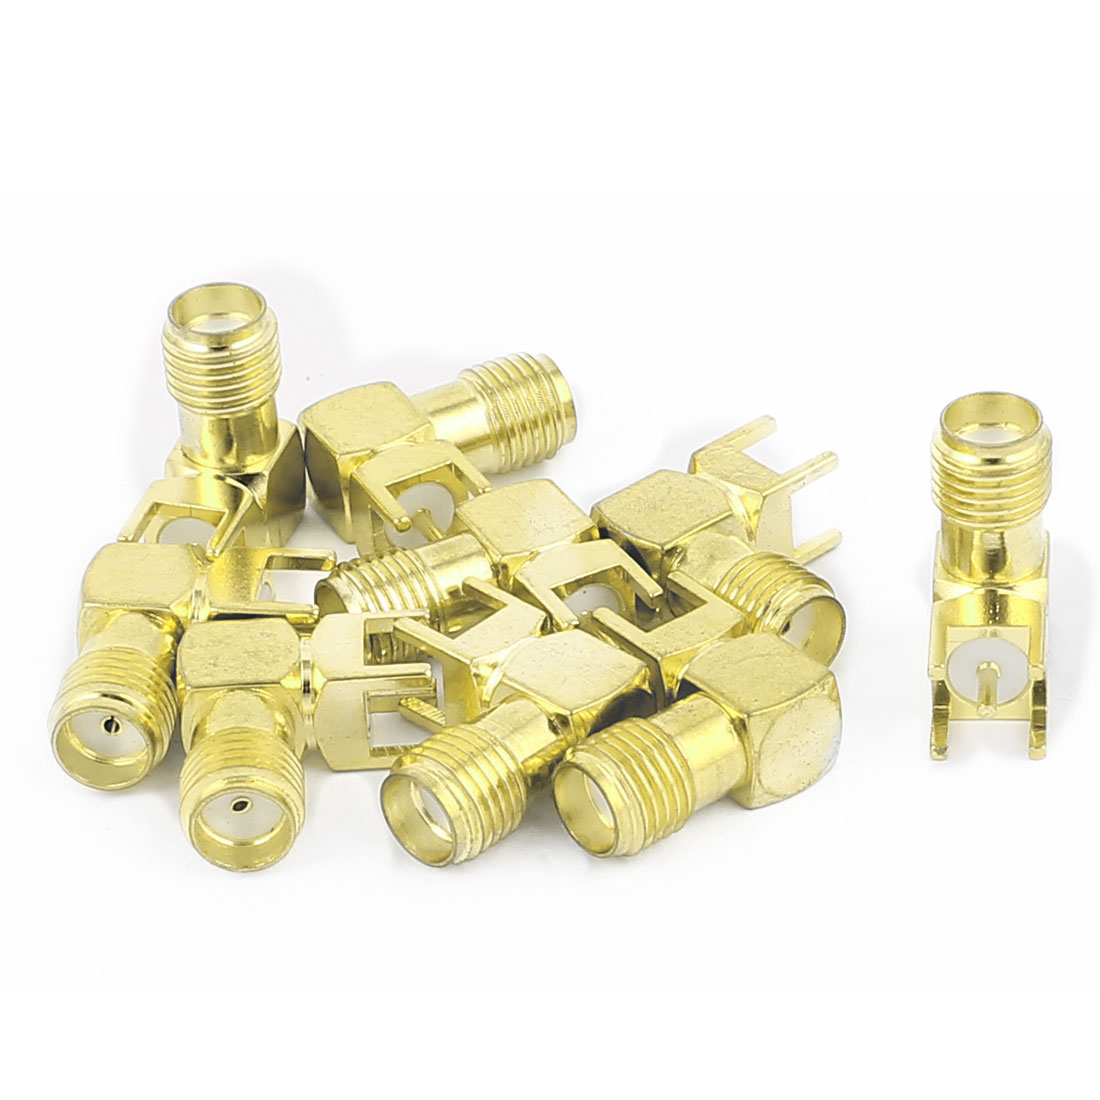 9pcs Gold Tone SMA Female to Male 90 Degree Solder PCB Mount RF Connector